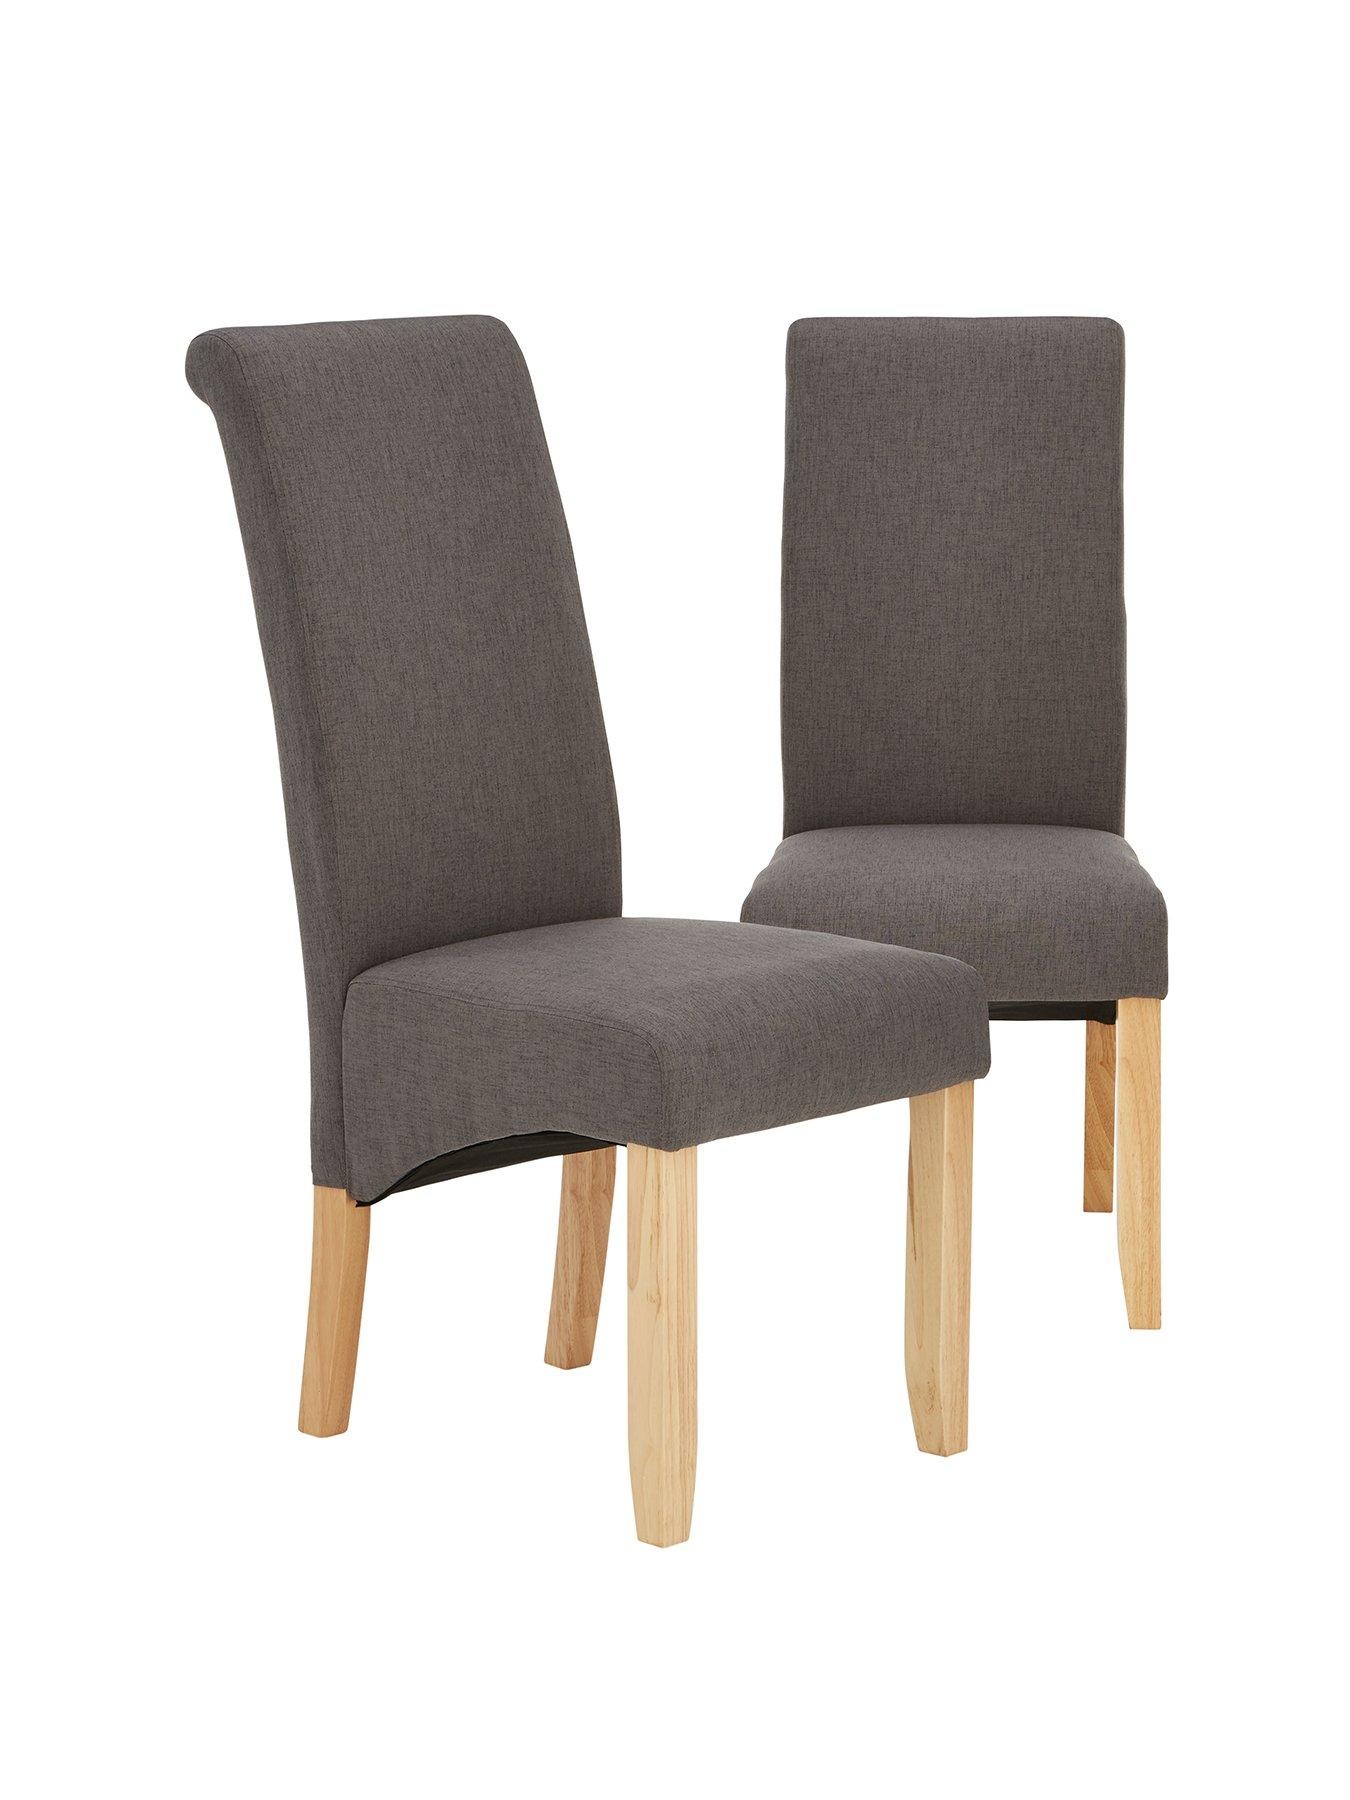 sc 1 st  Very & Pair Of Chatham Fabric Dining Chairs | very.co.uk